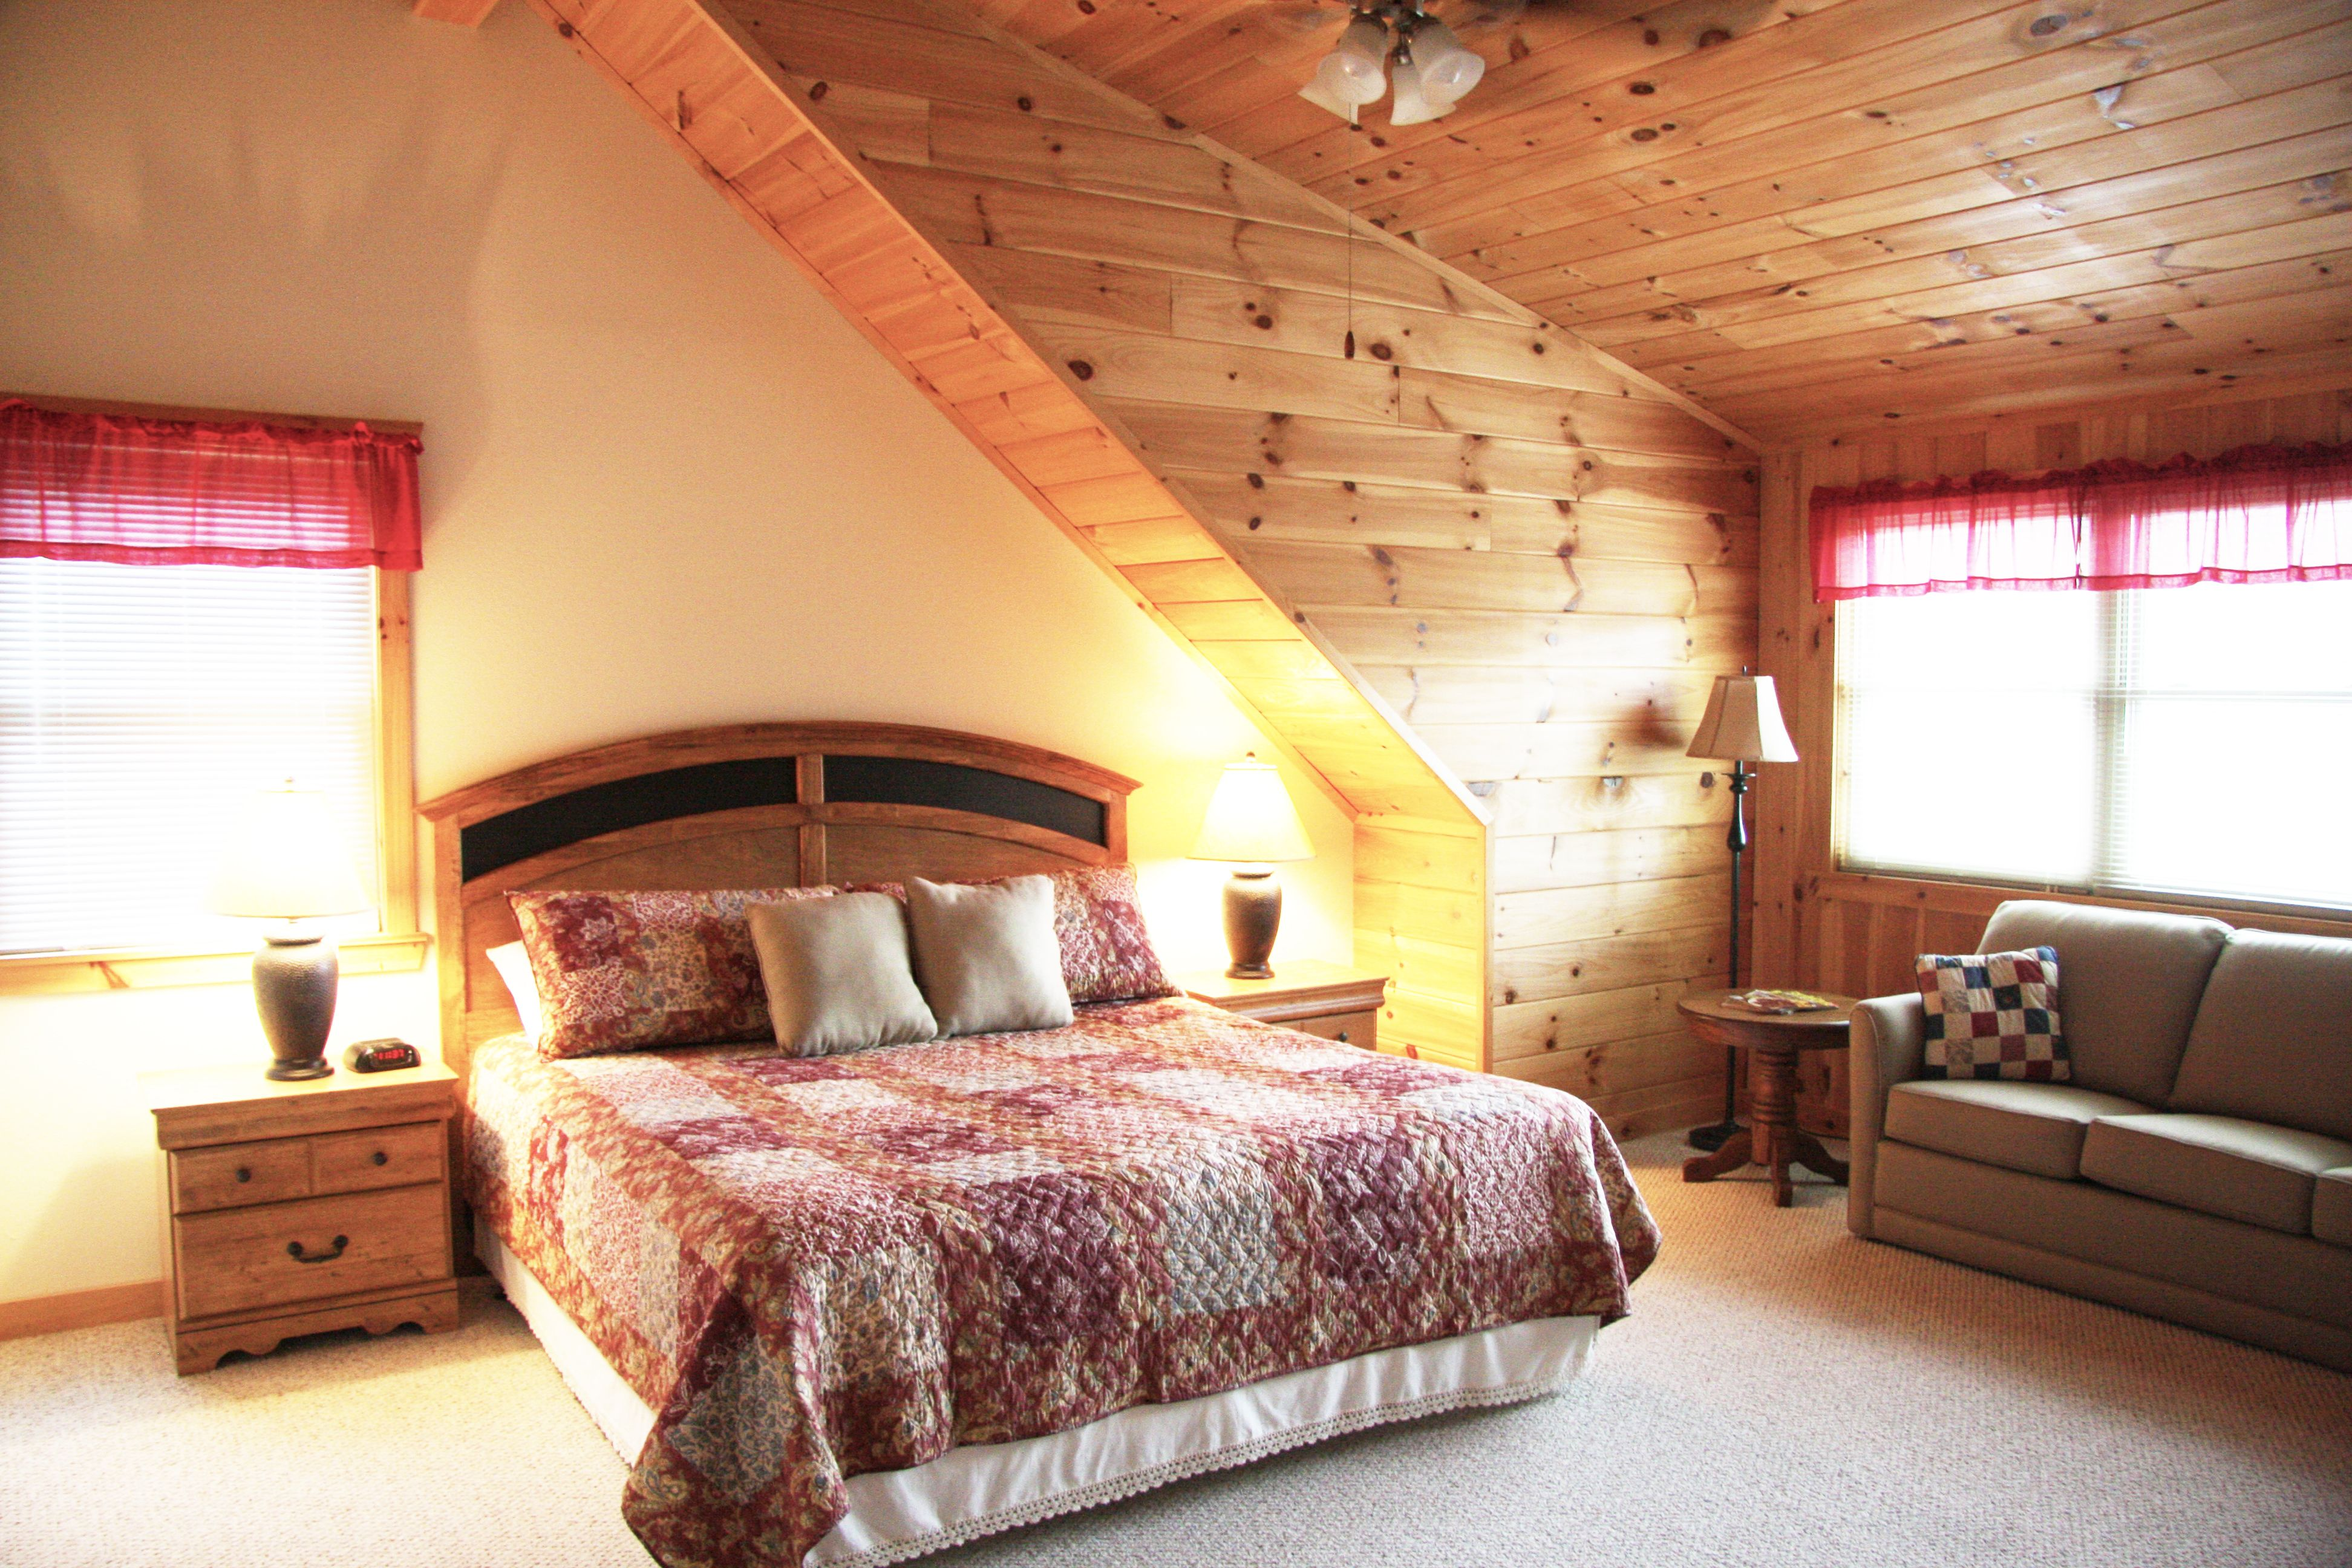 The first bedroom at Mountain Aire cabin has a King bed